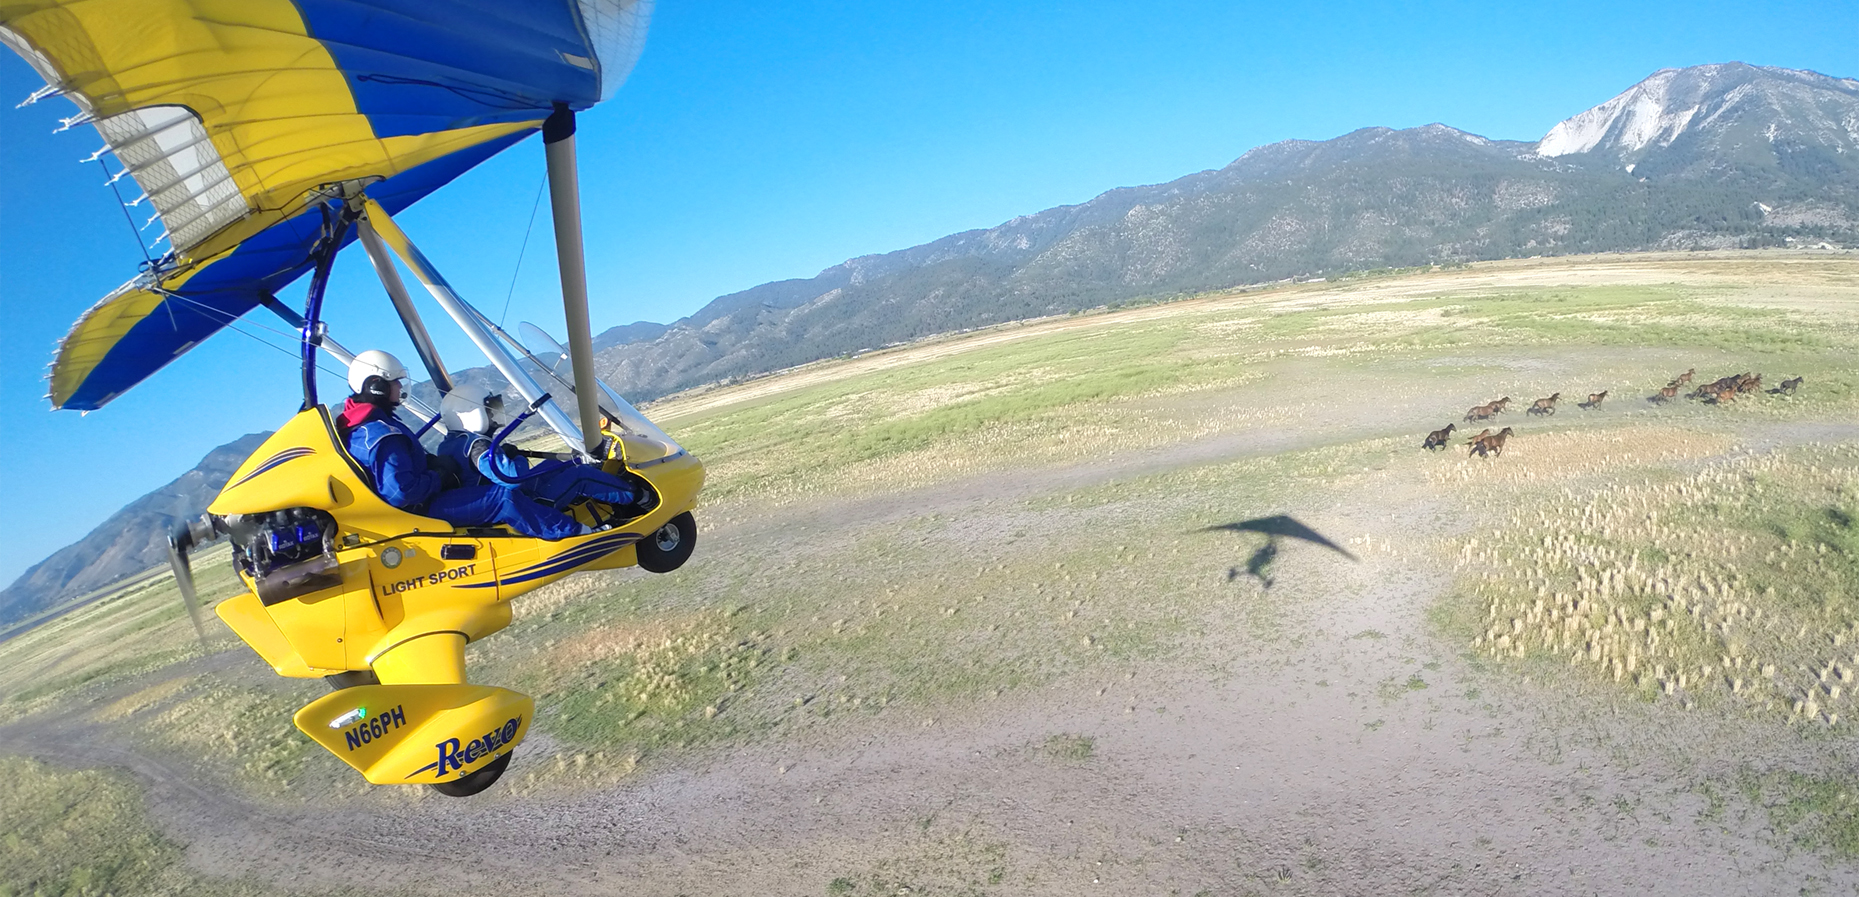 Hang Gliding Tahoe Following Wild Mustang in Nevada Desert